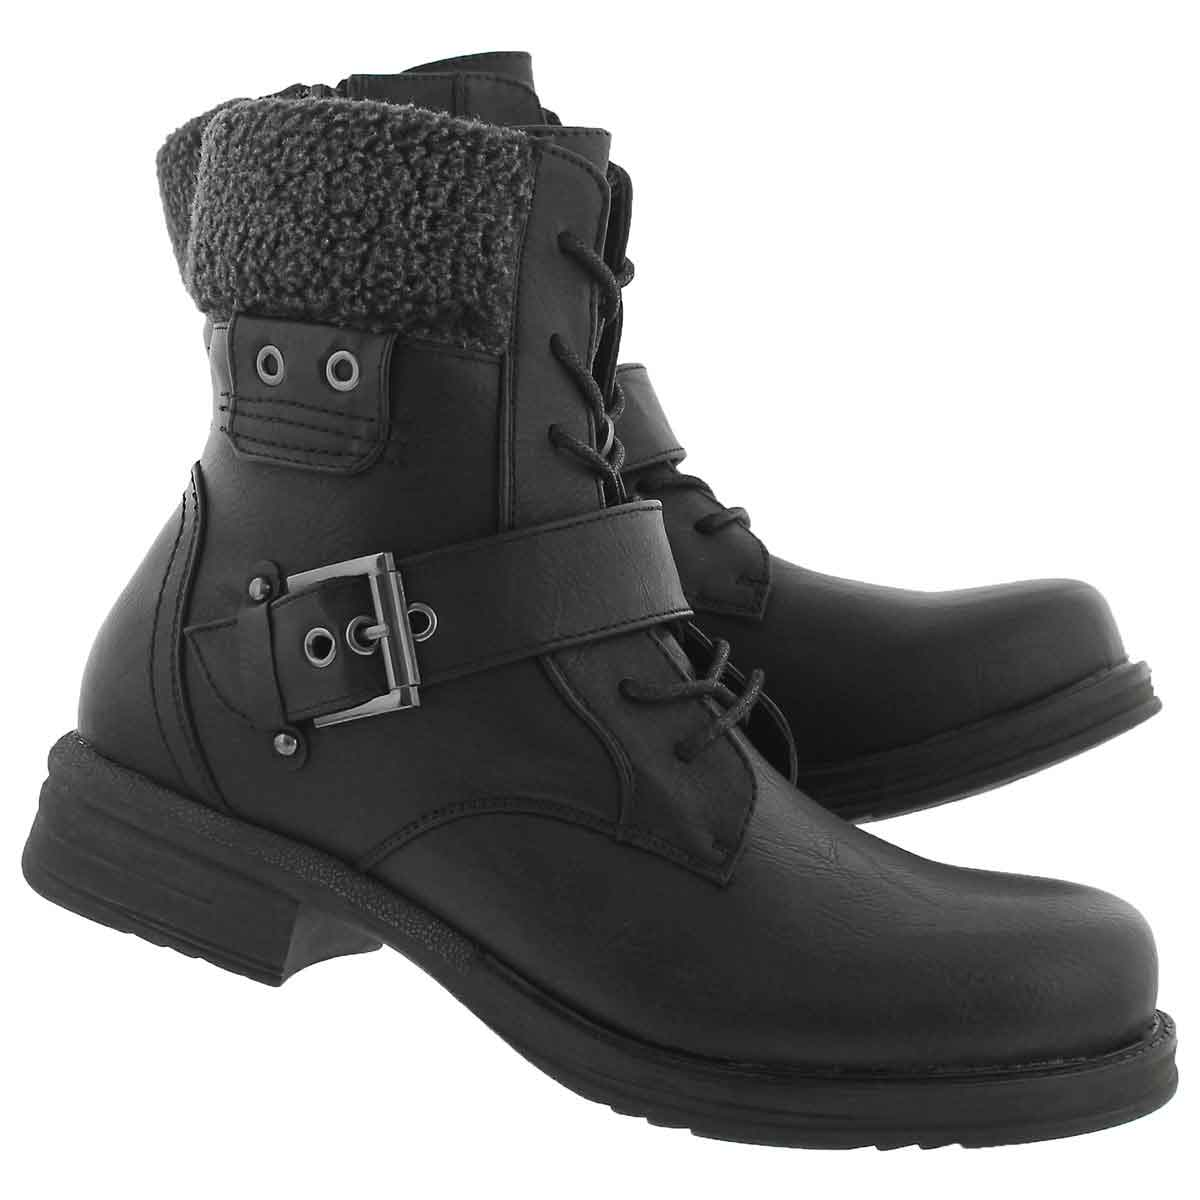 Lds Kiara 2 blk lace up casual boot